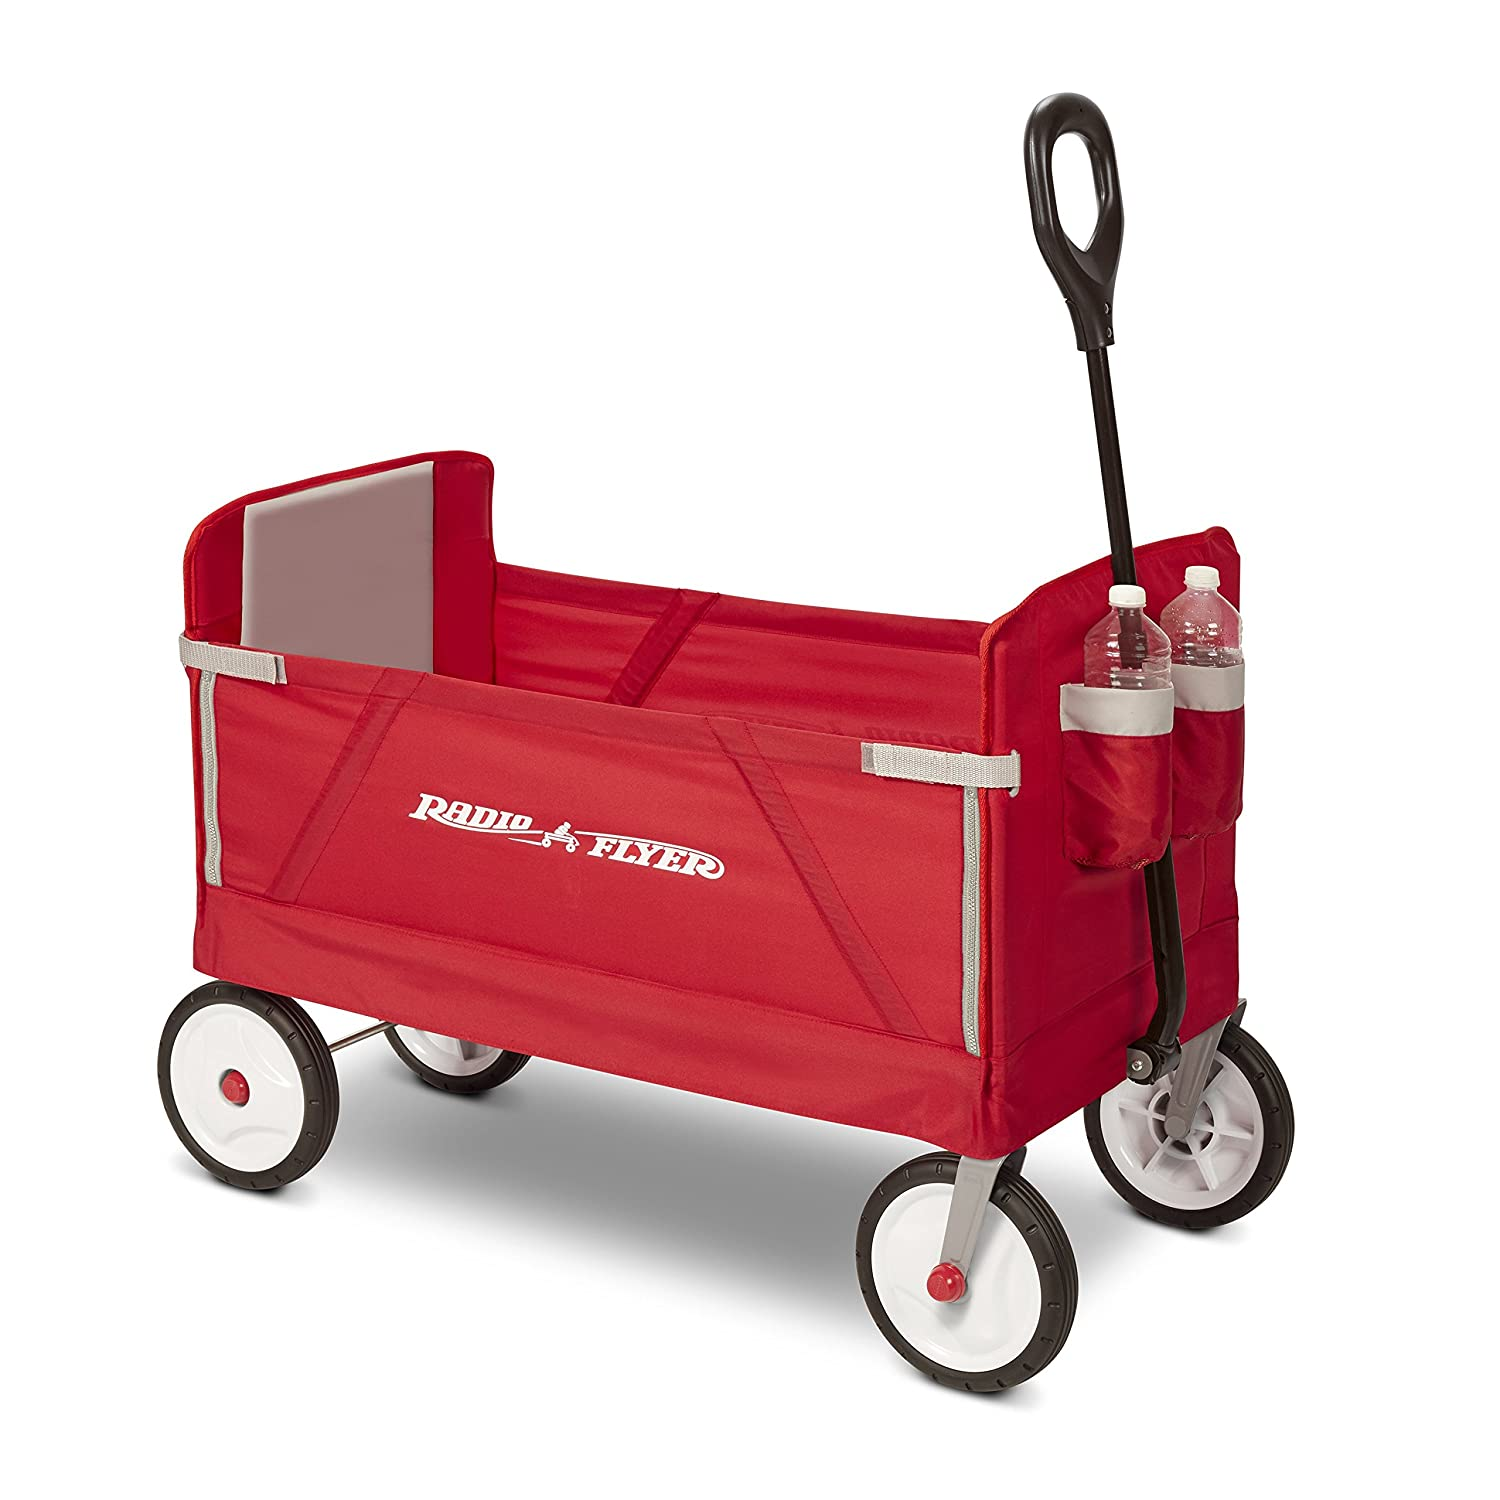 Radio Flyer 3 in 1 EZ Folding Wagon for kids and cargo